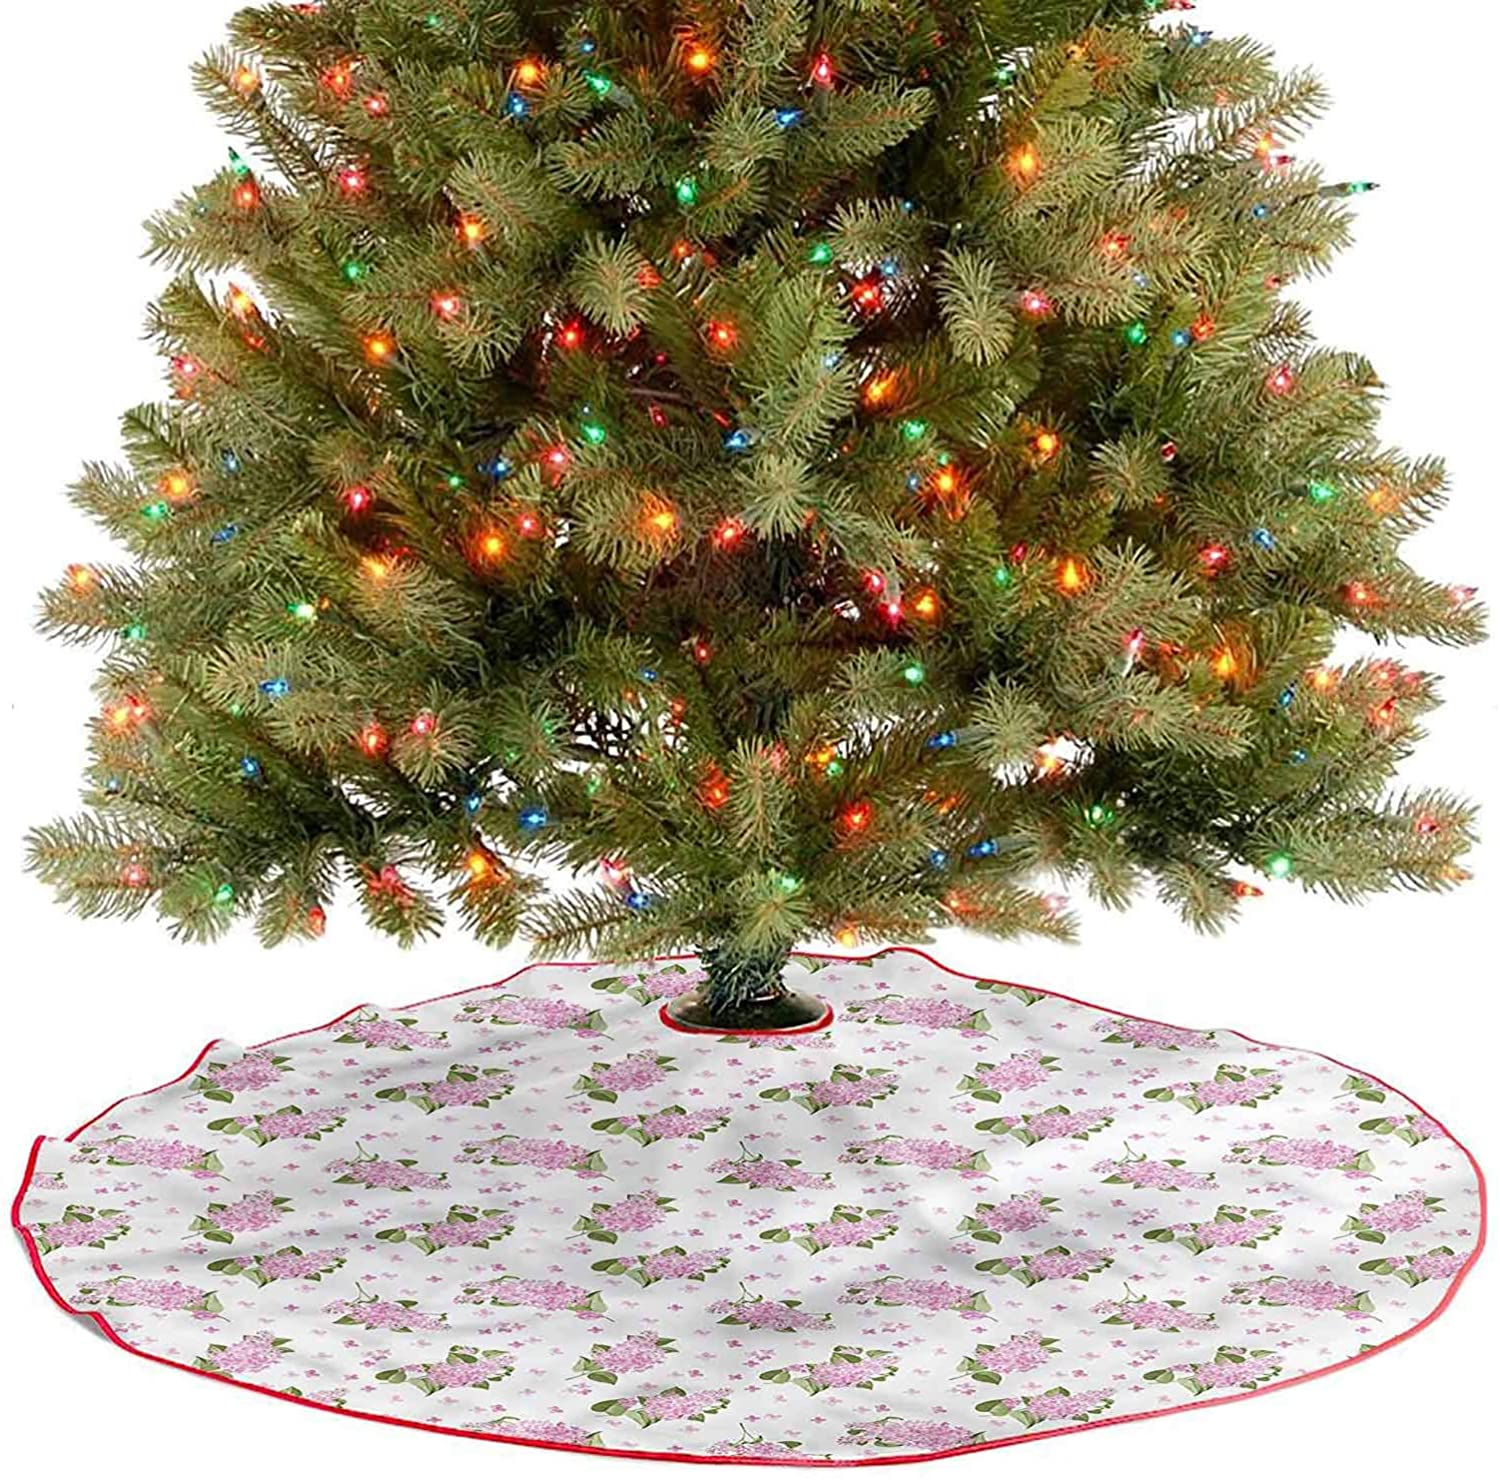 Large Christmas Tree Skirt Flowers Pattern Country Style Holiday Decor Ornaments Covers A Large Amount of Space Under The Tree Diameter - 48 Inch